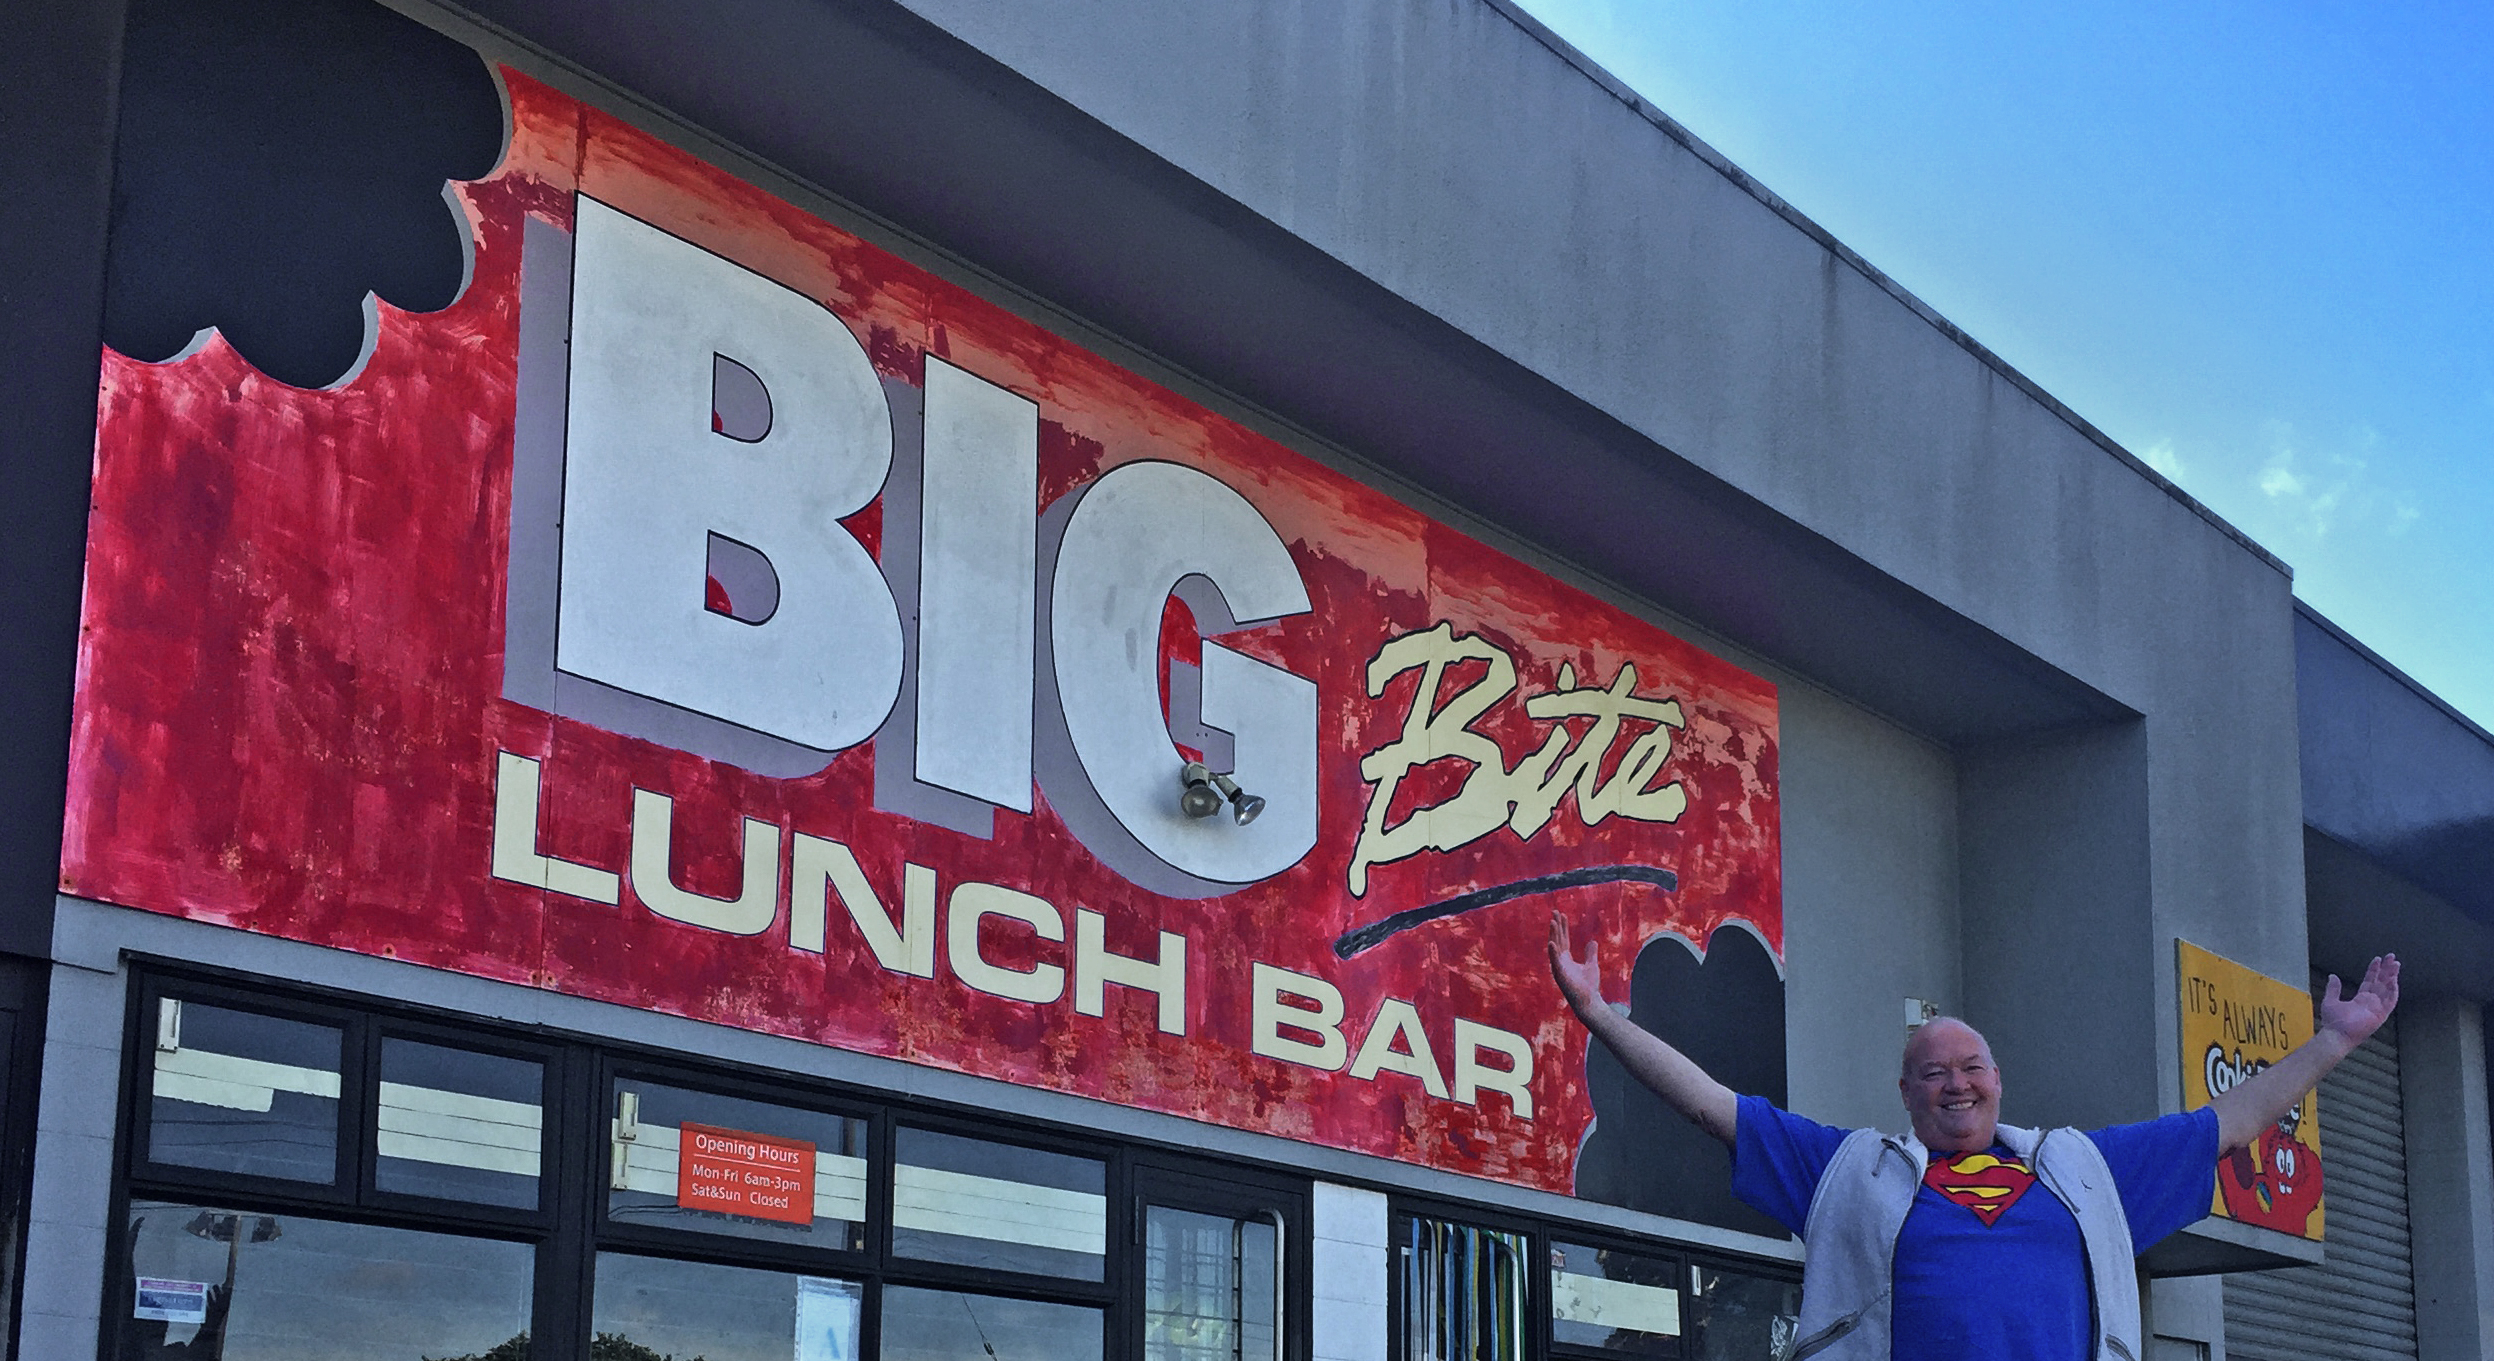 Big Bite sign – Standing the test of time graphic